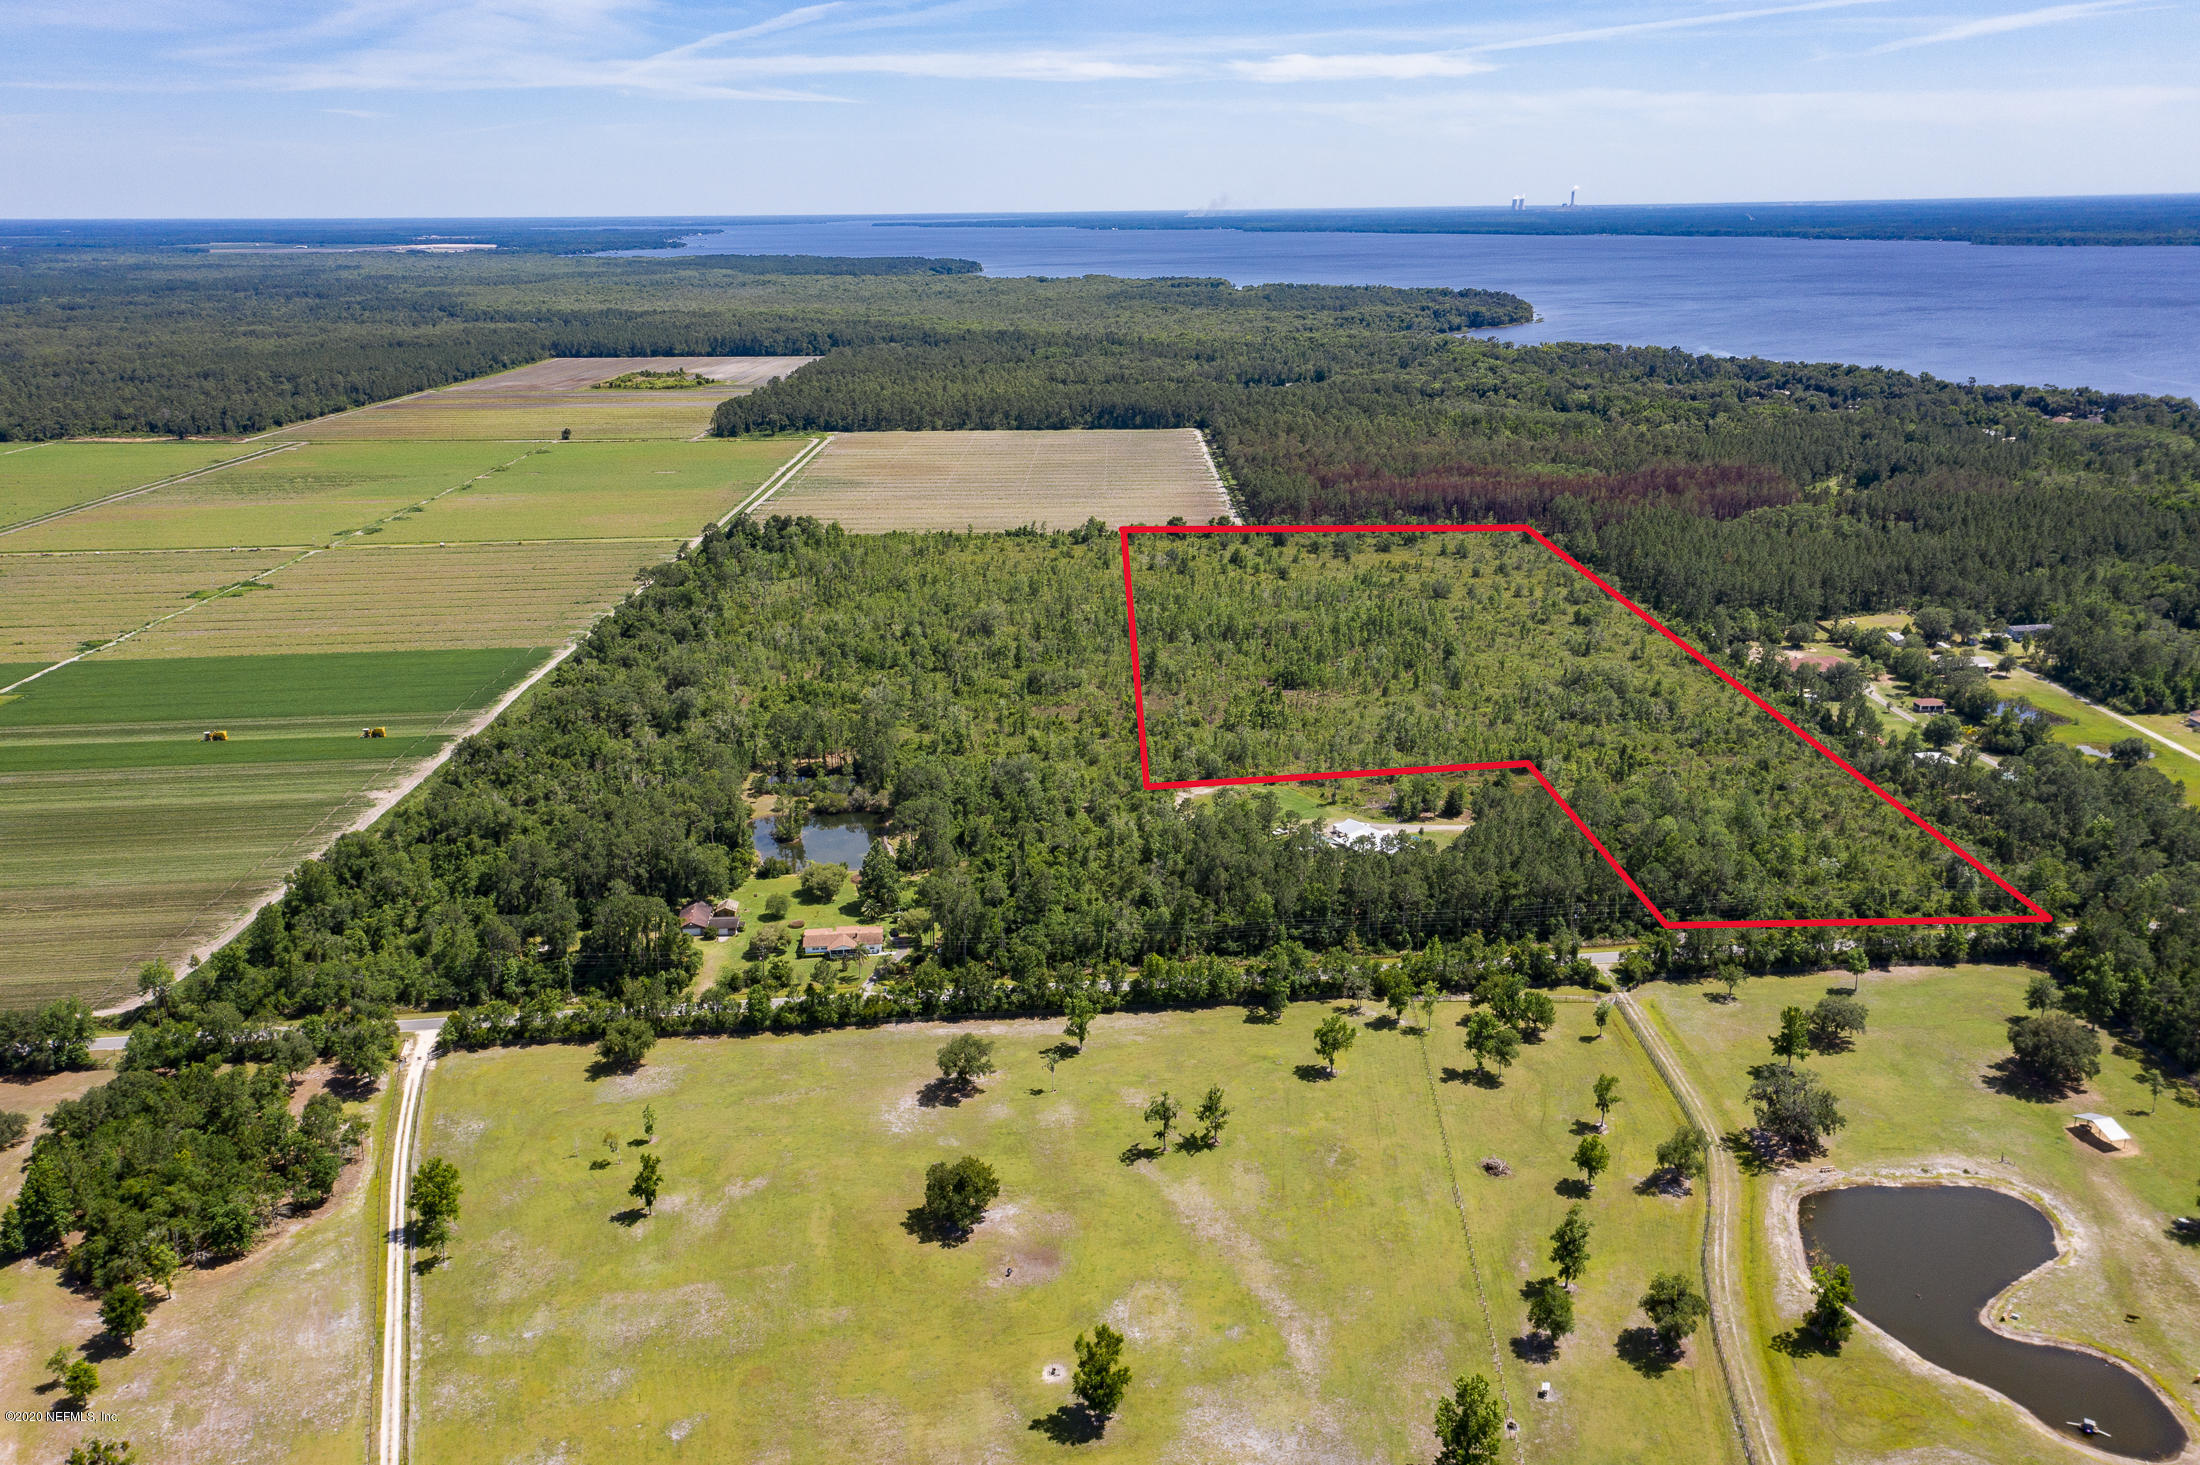 0 COUNTY ROAD 208 - B, ST AUGUSTINE, FLORIDA 32092, ,Vacant land,For sale,COUNTY ROAD 208 - B,1053969